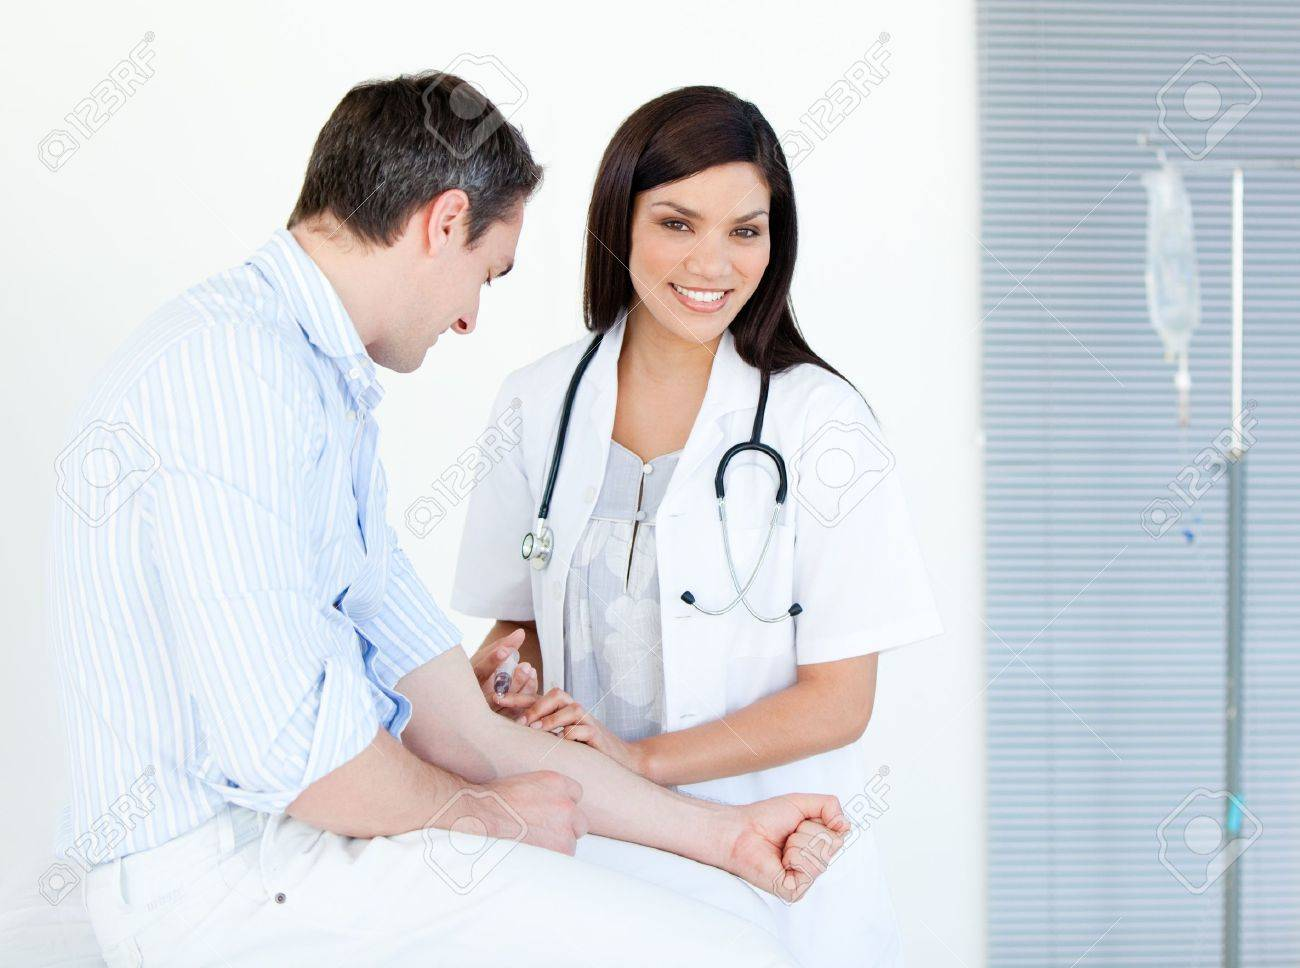 Smiling female doctor making injection to her patient Stock Photo - 10110154